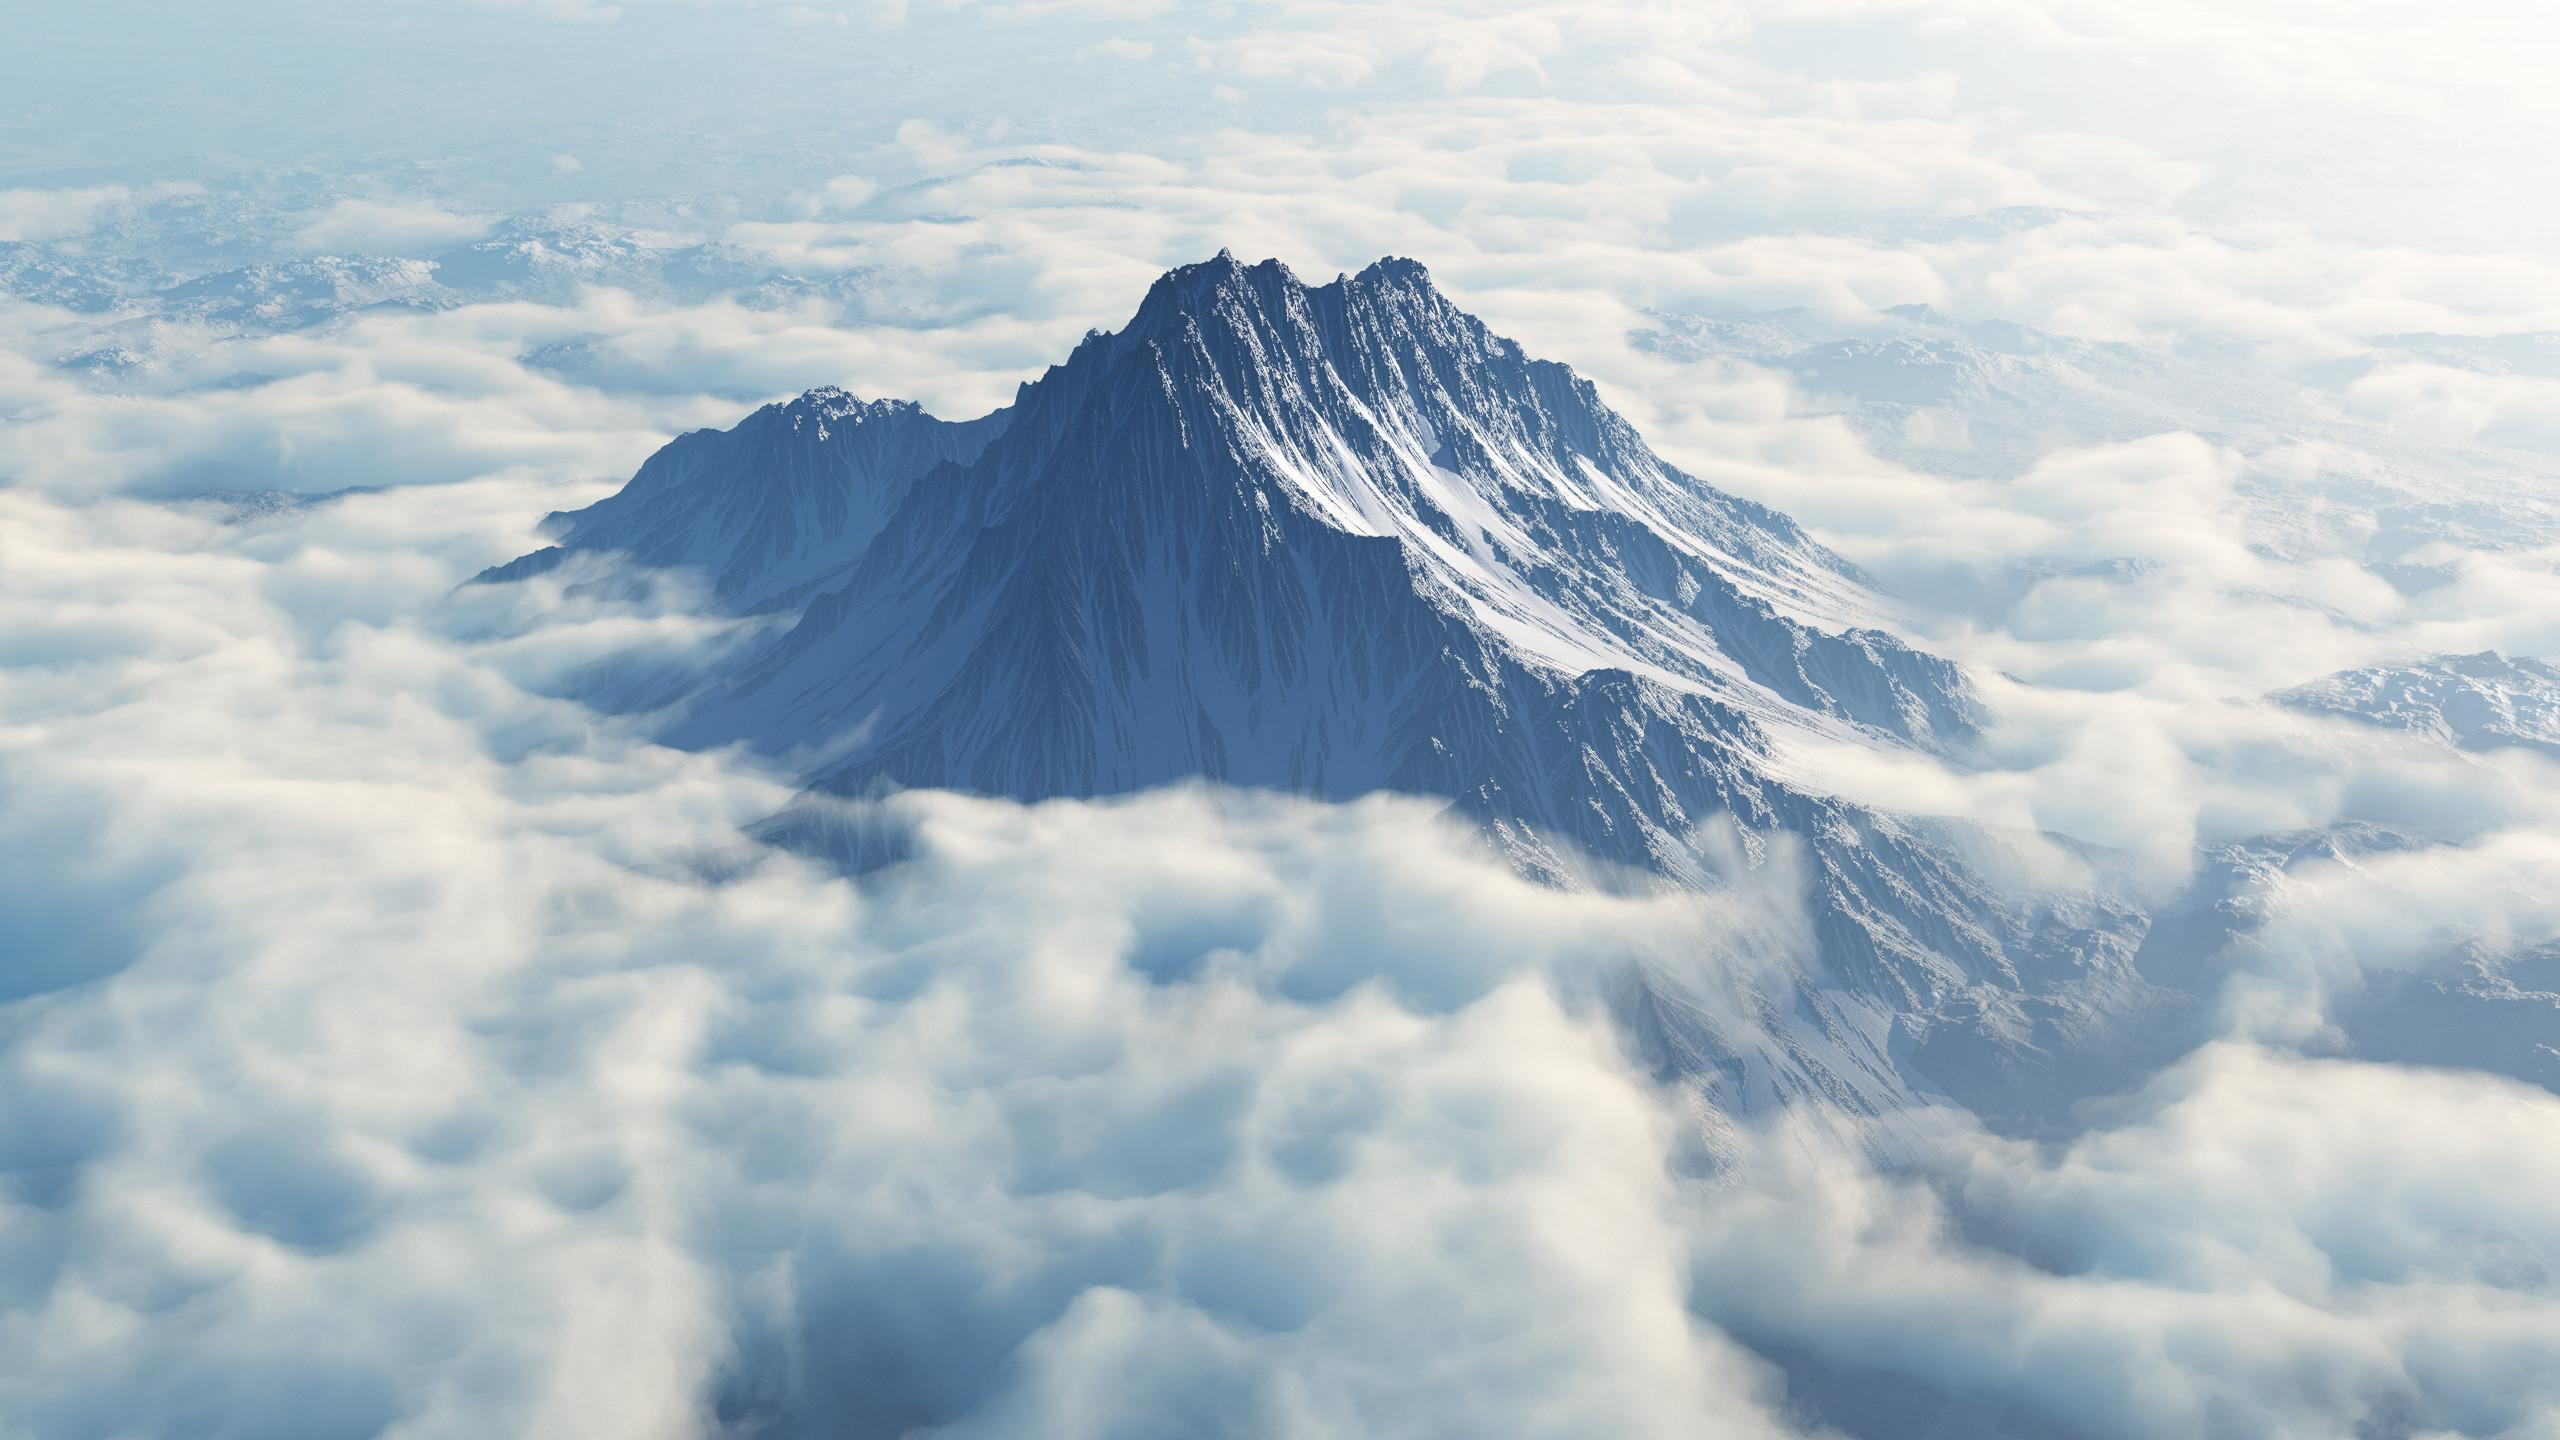 Mount Olympus wallpaper nature and landscape Wallpaper Better 2560x1440